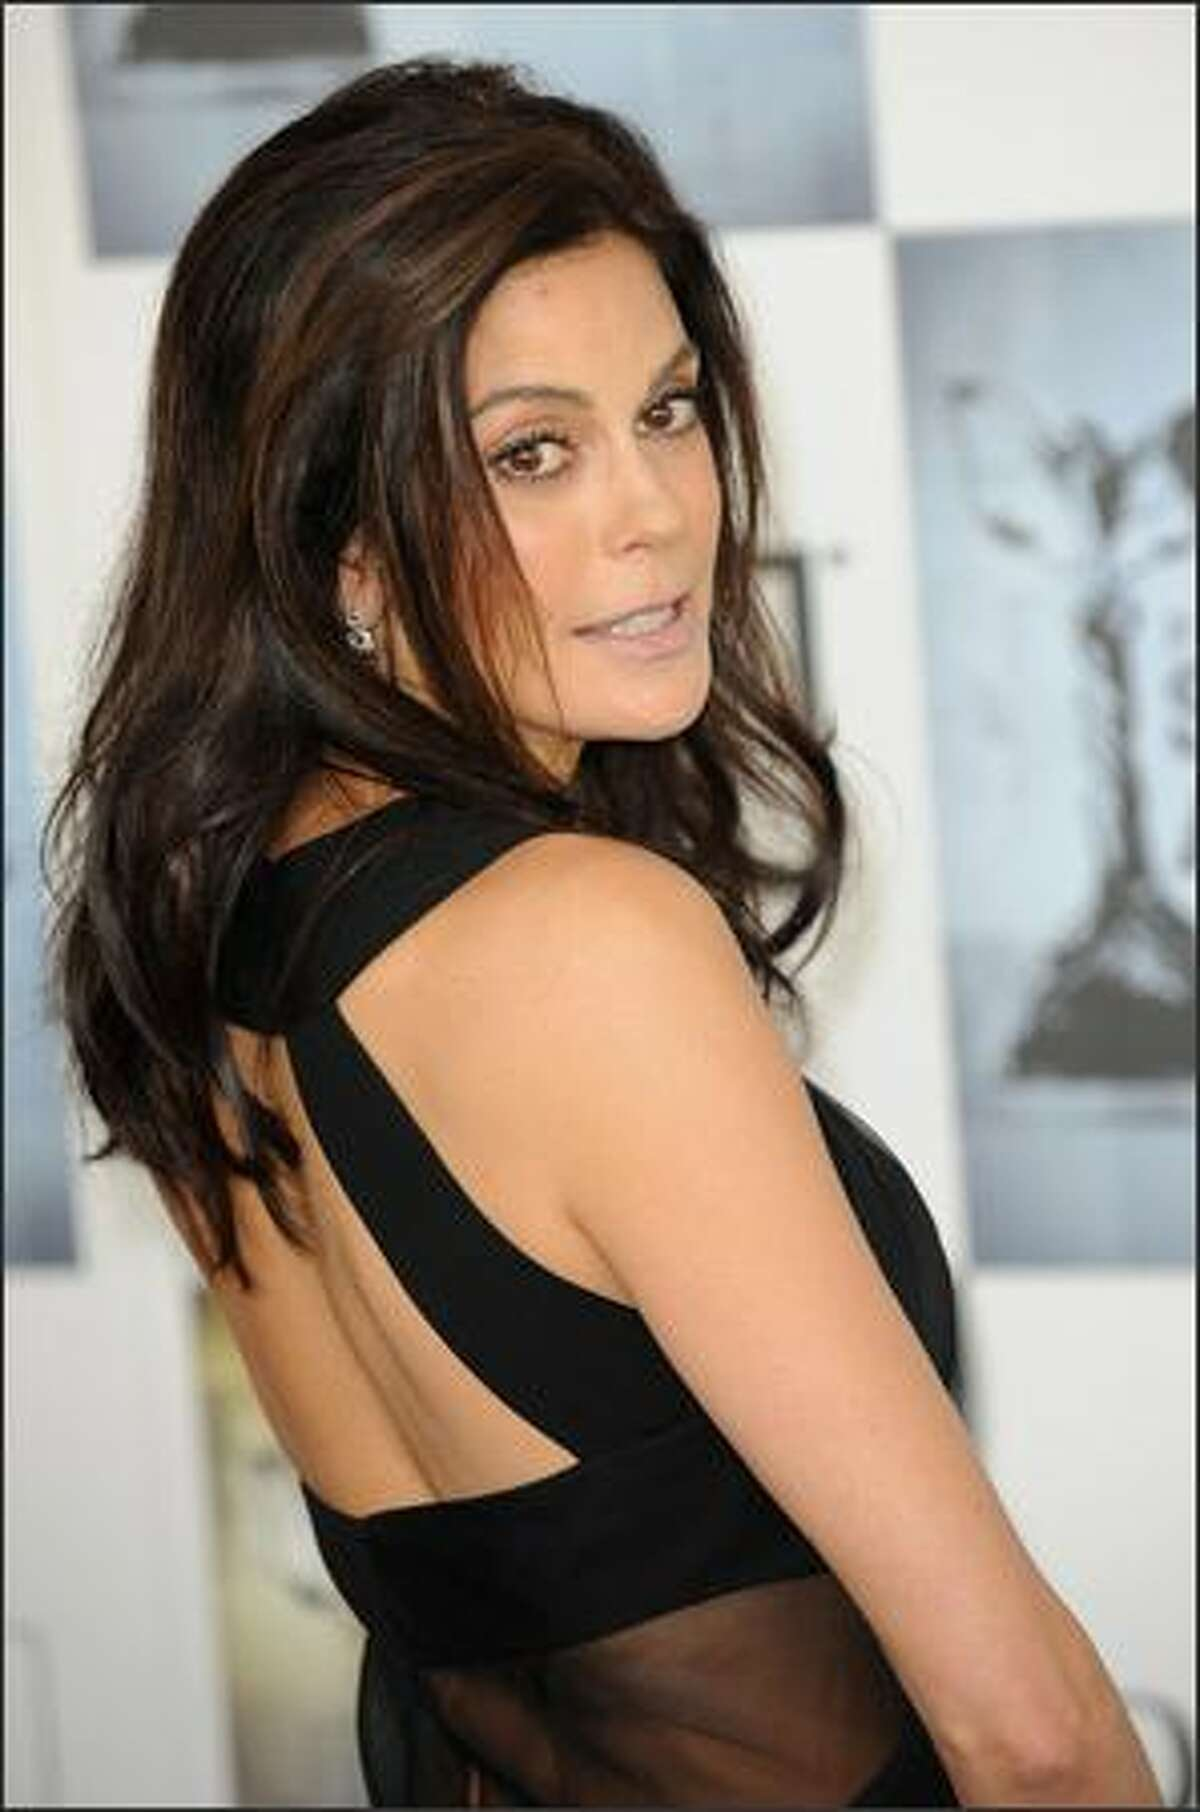 Teri Hatcher, 49ers Cheerleader - San Francisco Bay Area native Terri Hatcher was a 49ers cheerleader in 1984 prior to playing the role of Lois Lane and our favorite desperate housewife.